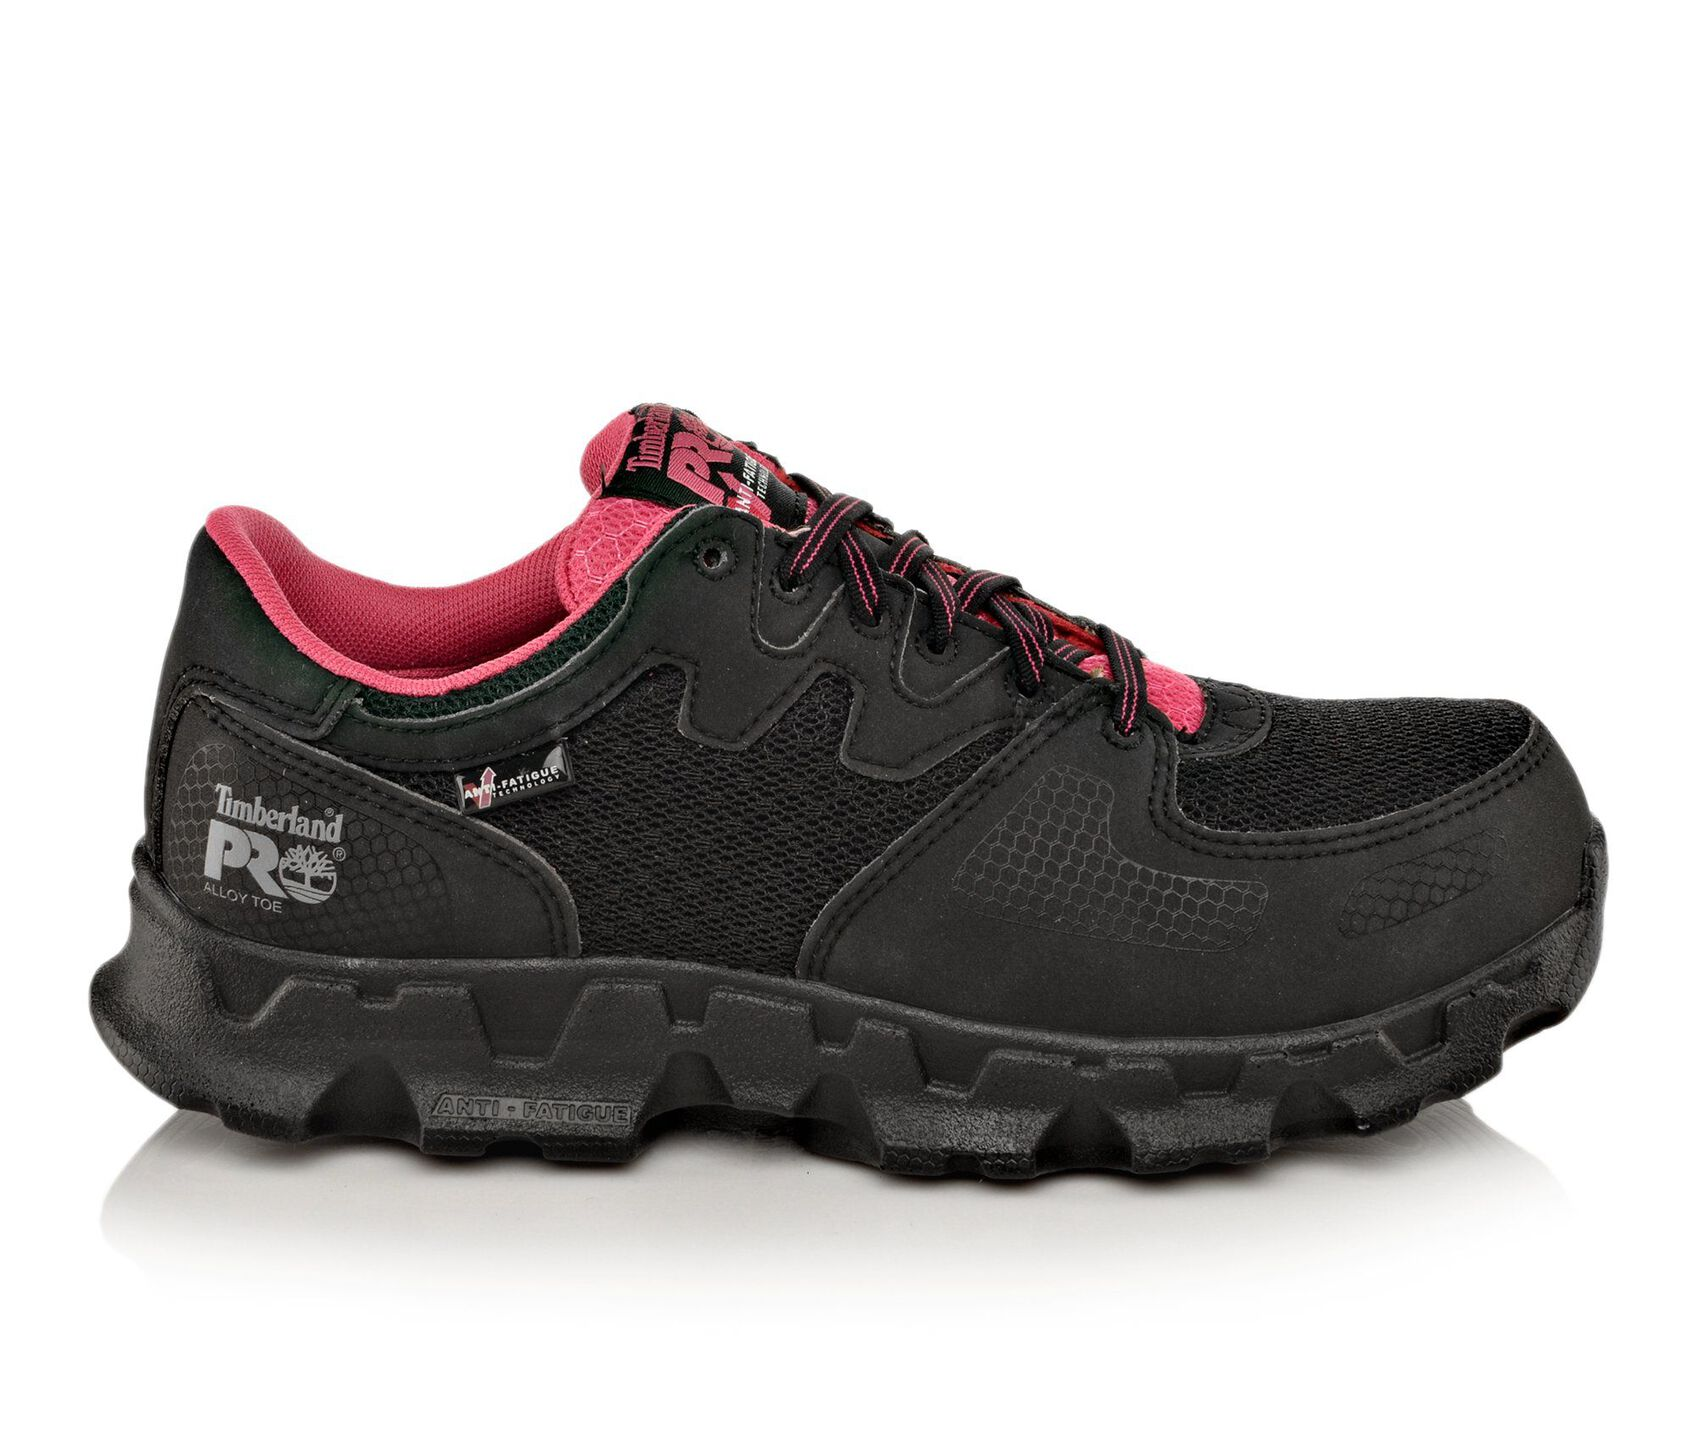 boot brand most blundstone steel black safety australian everything boots toe shoes comfortable comfort comforter